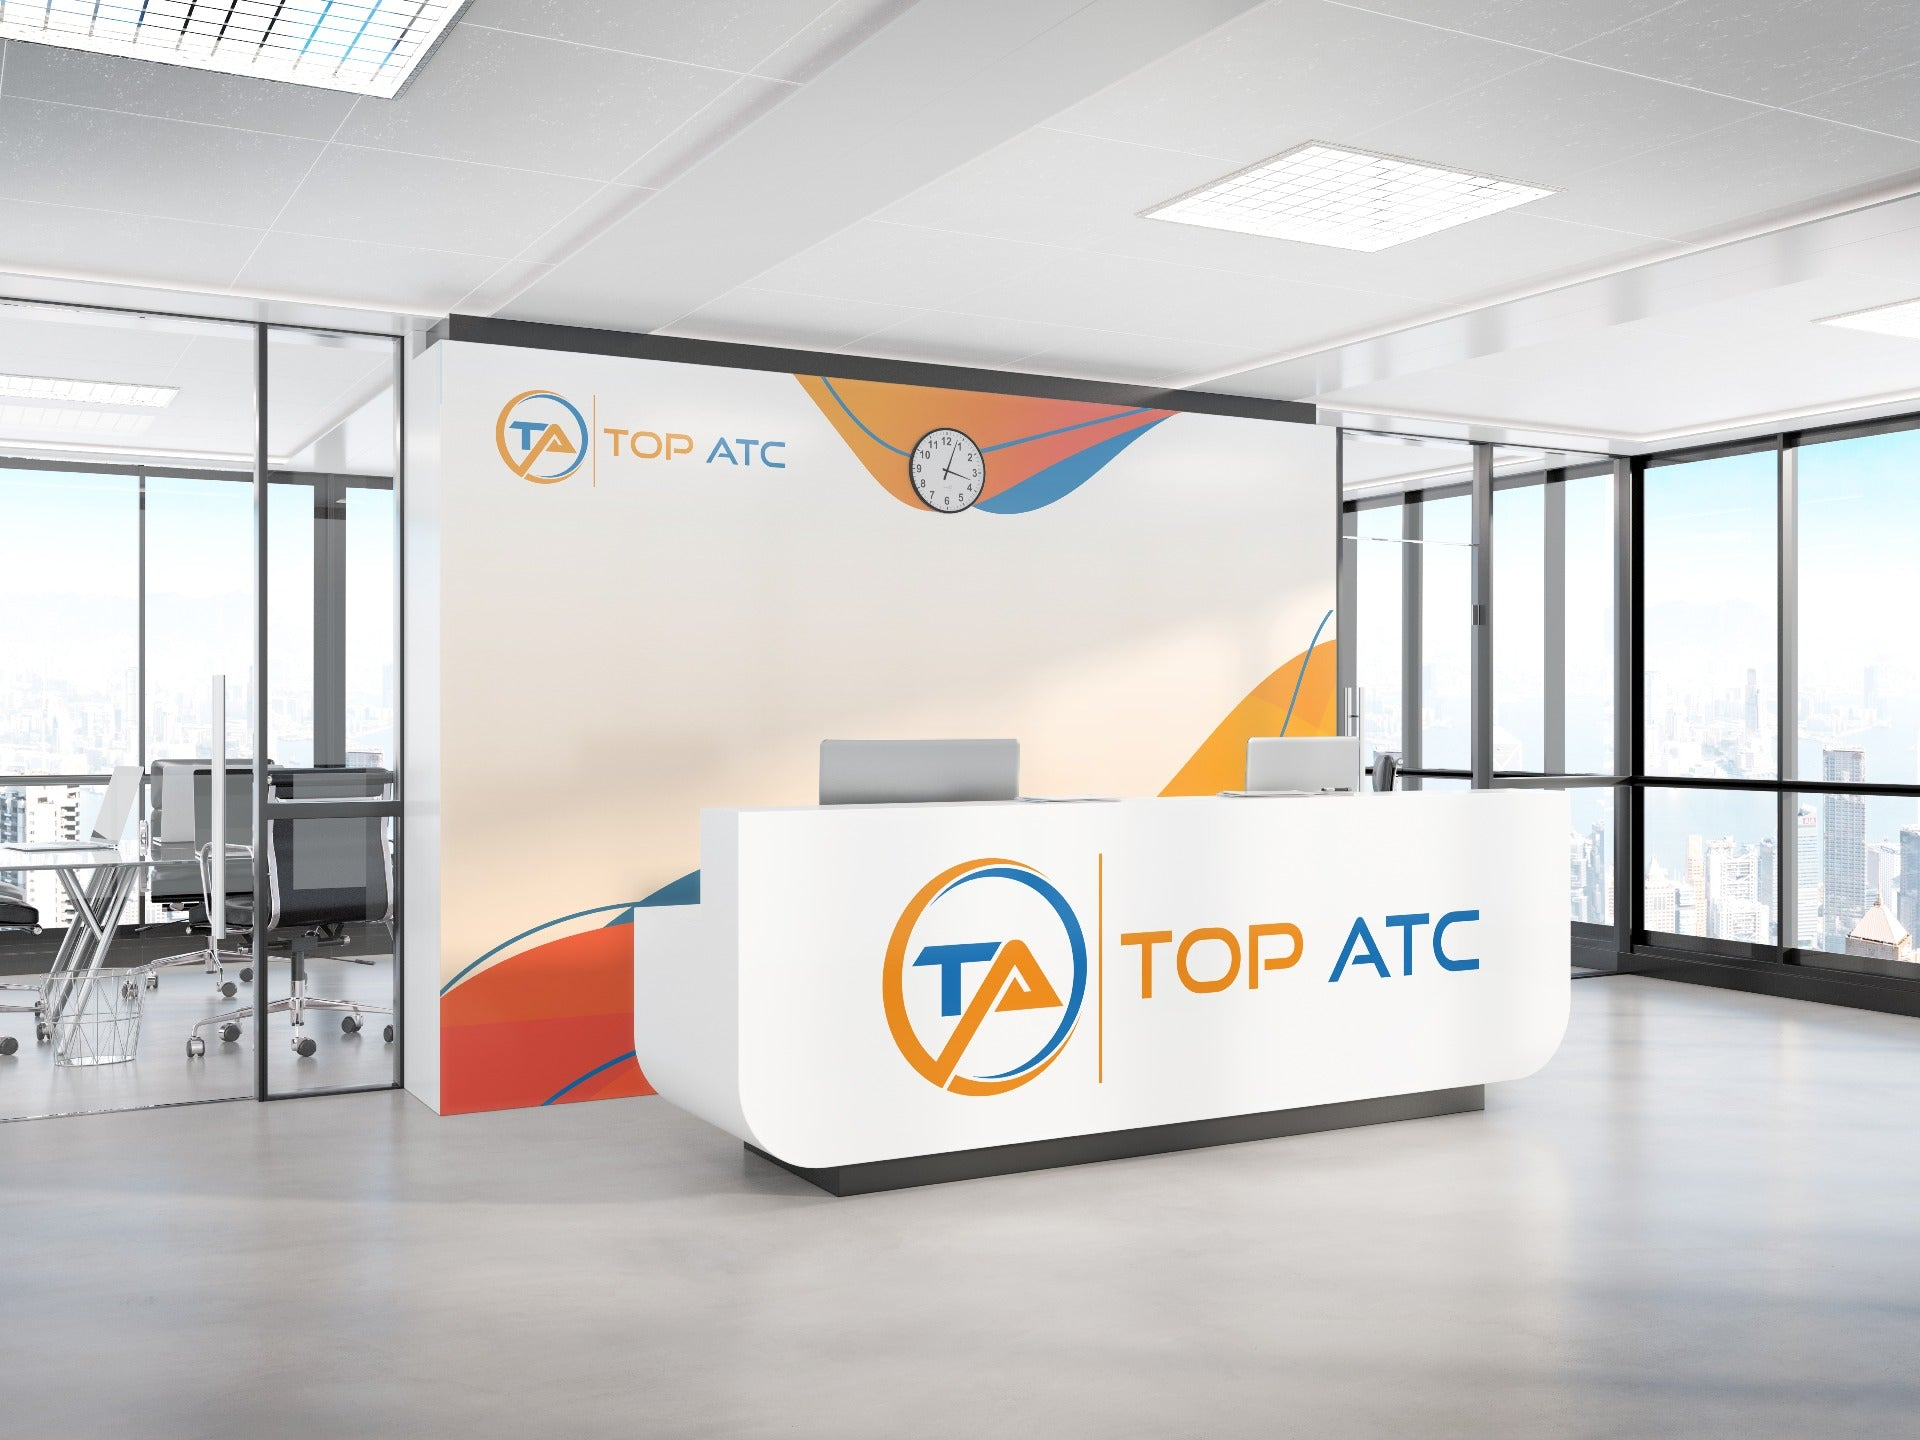 About Top ATC